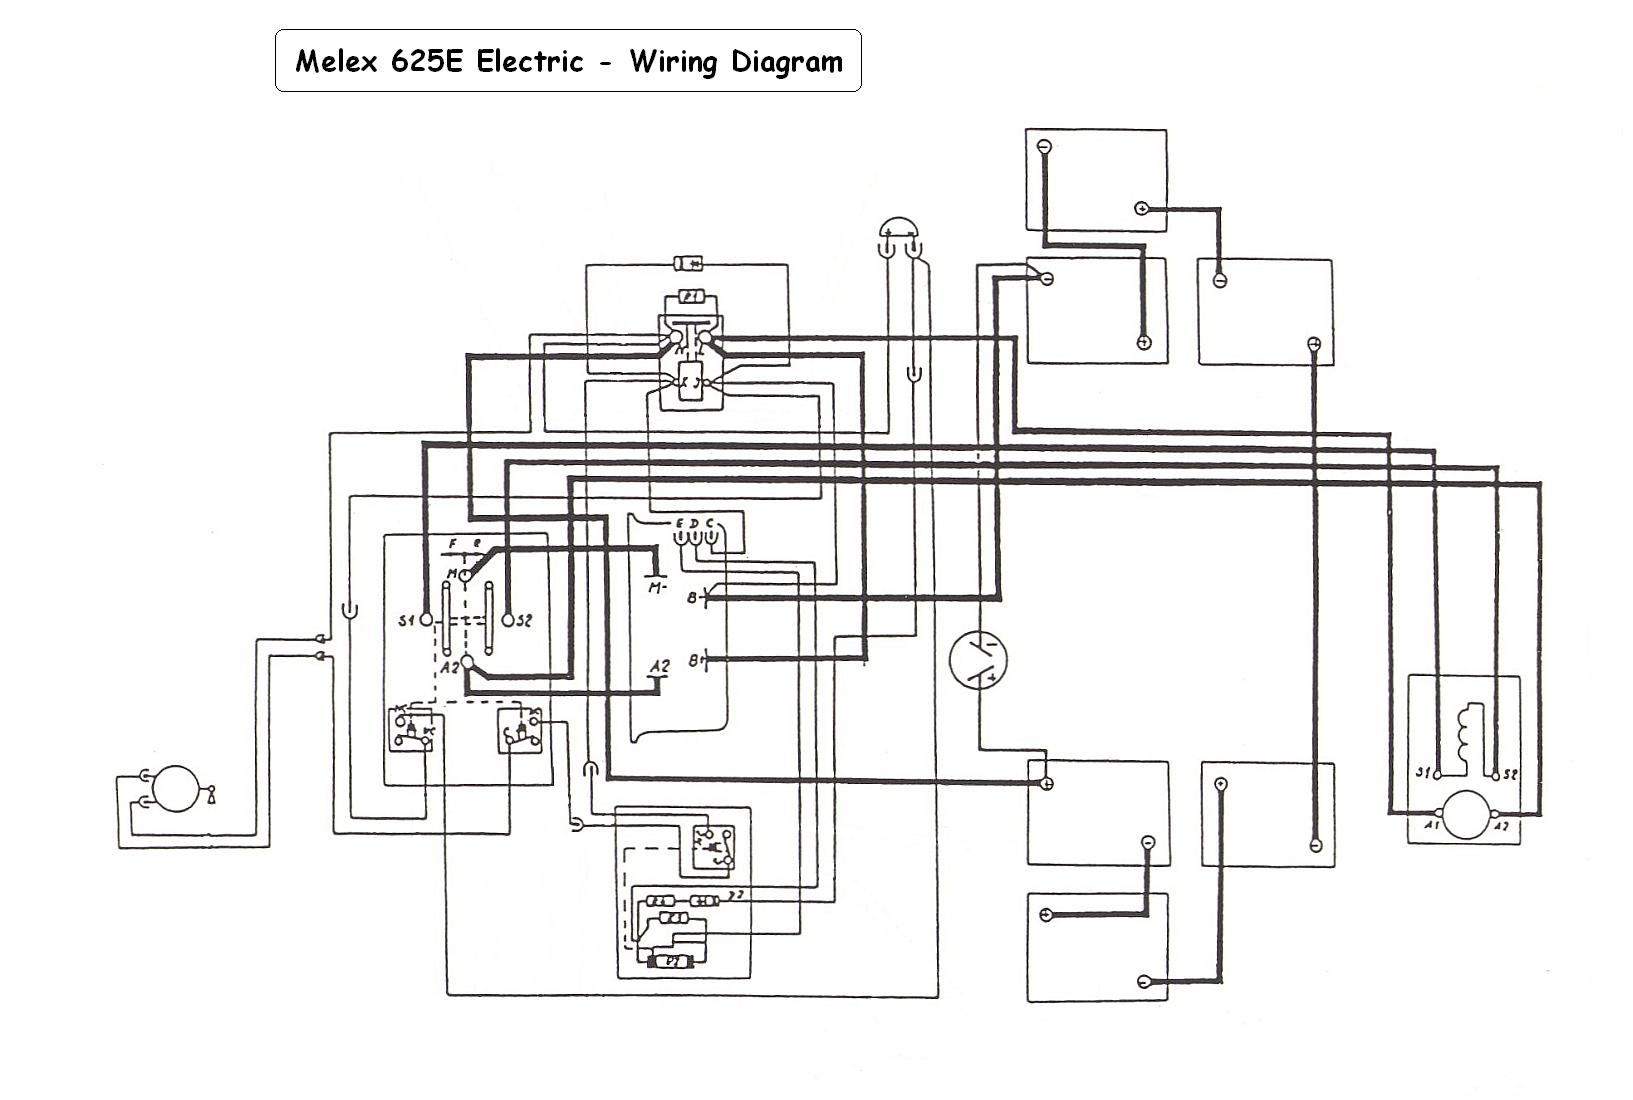 4 Wire Ignition Switch Wiring Diagram on 3 pin puter fan wiring diagram